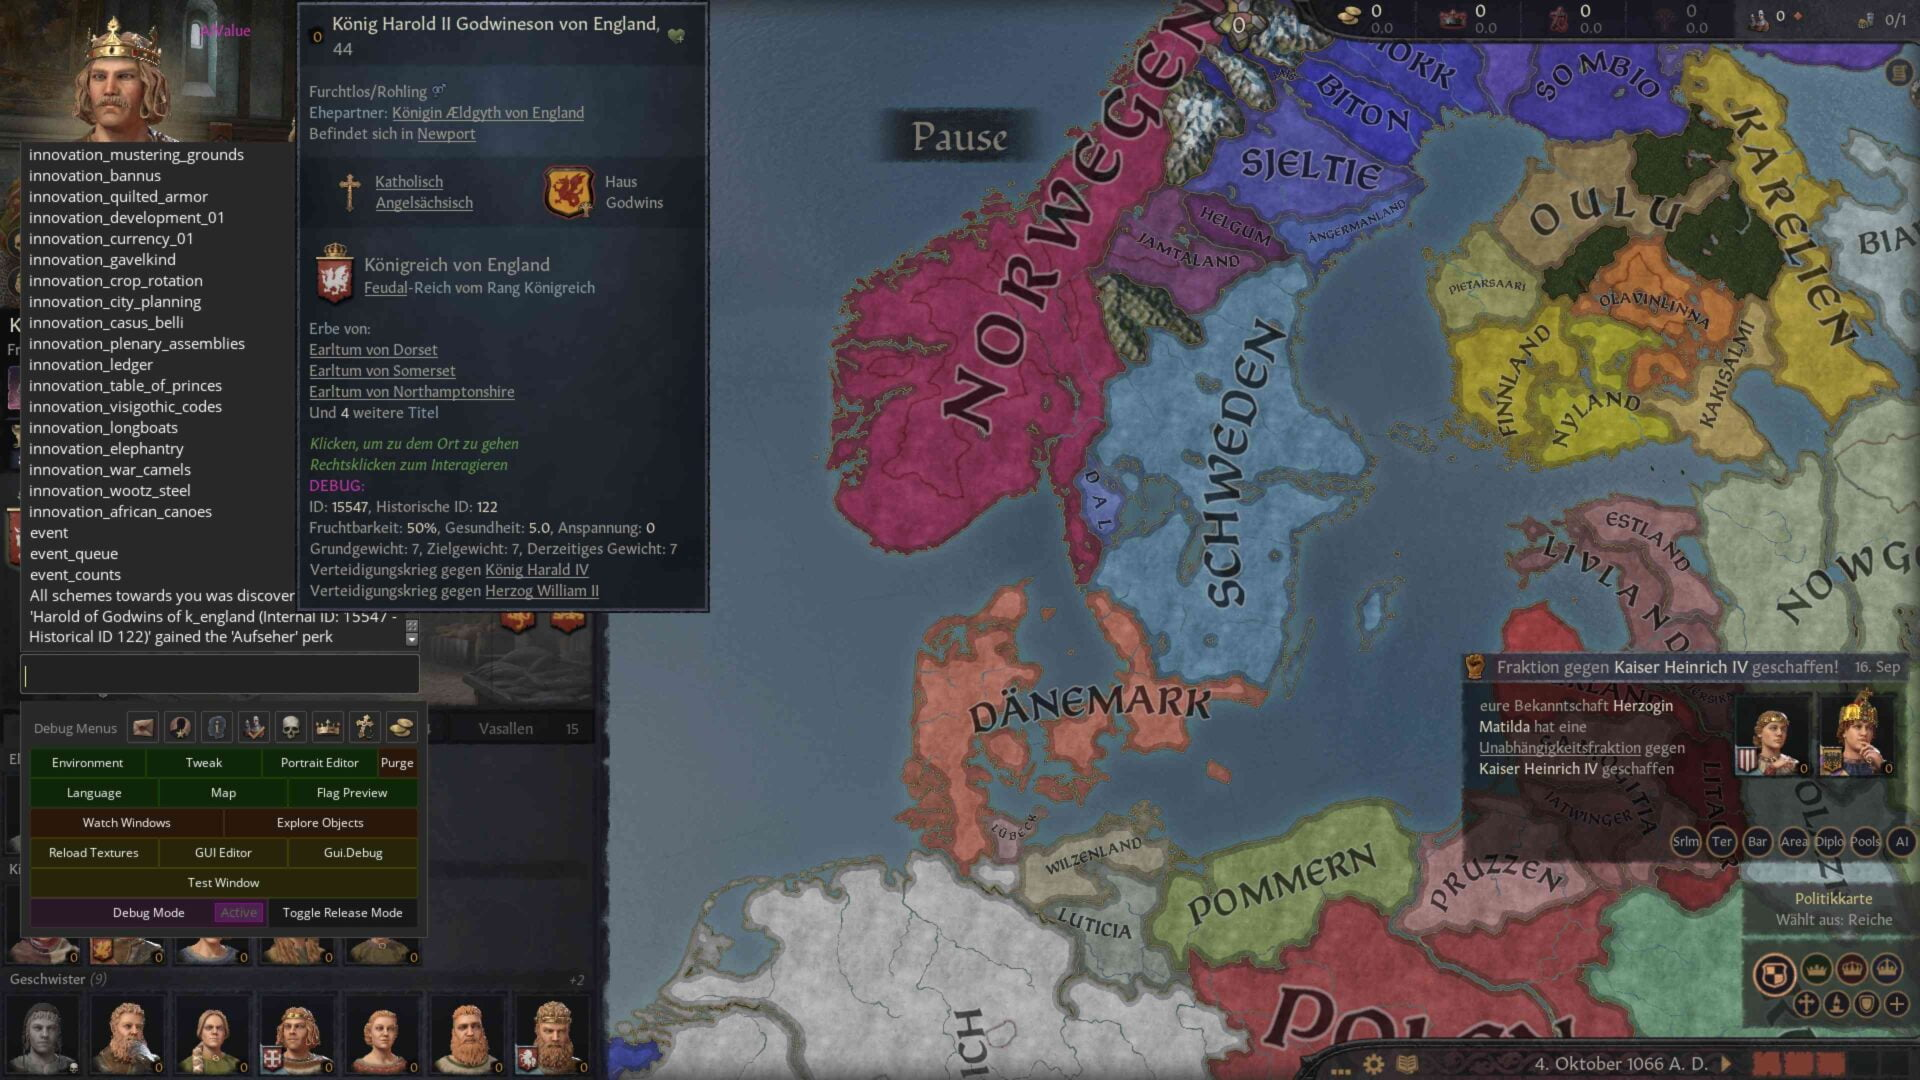 Crusader Kings 3 overview map with England and activated cheat console, the innovations list shows